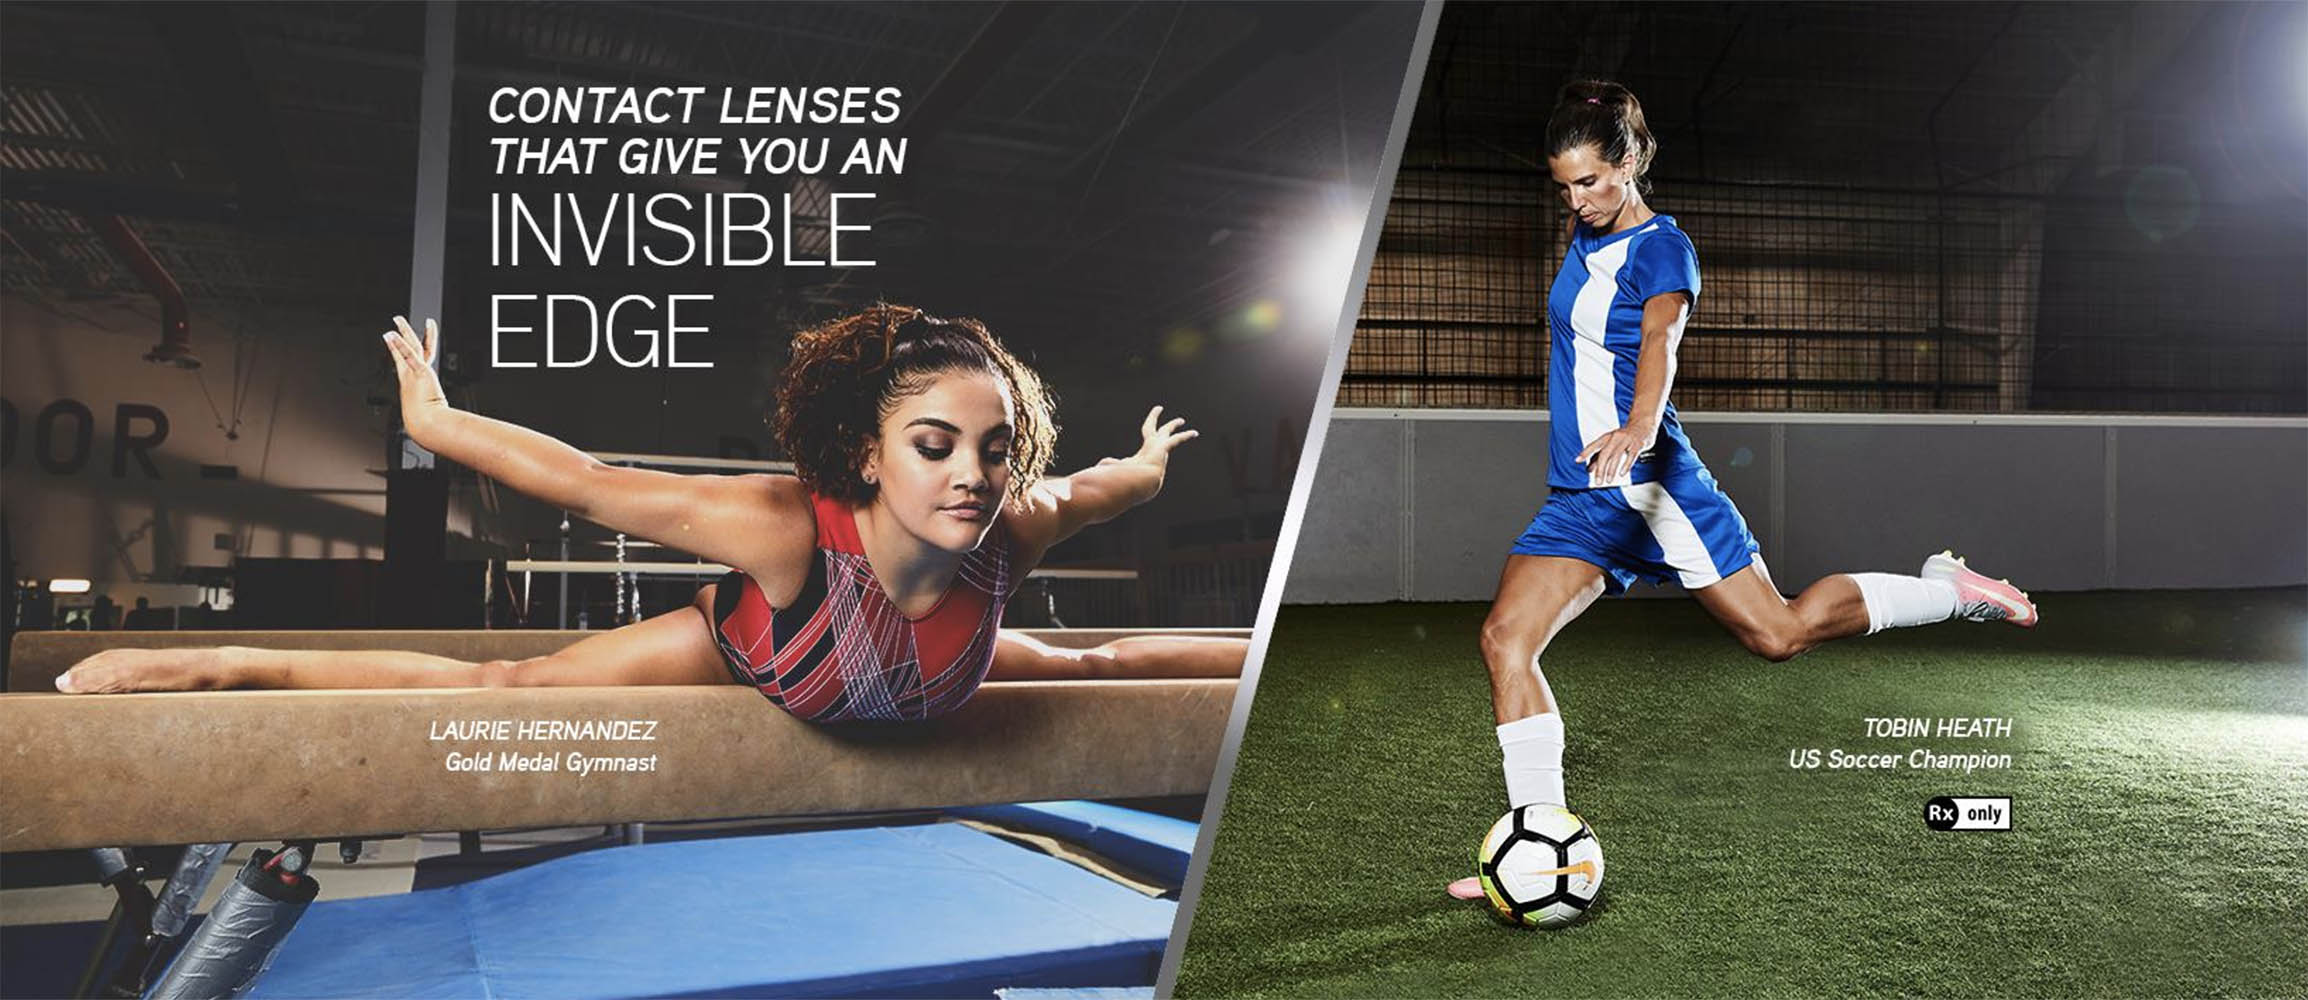 Alcon Dailies Contact Lenses Invisible Edge Campaign